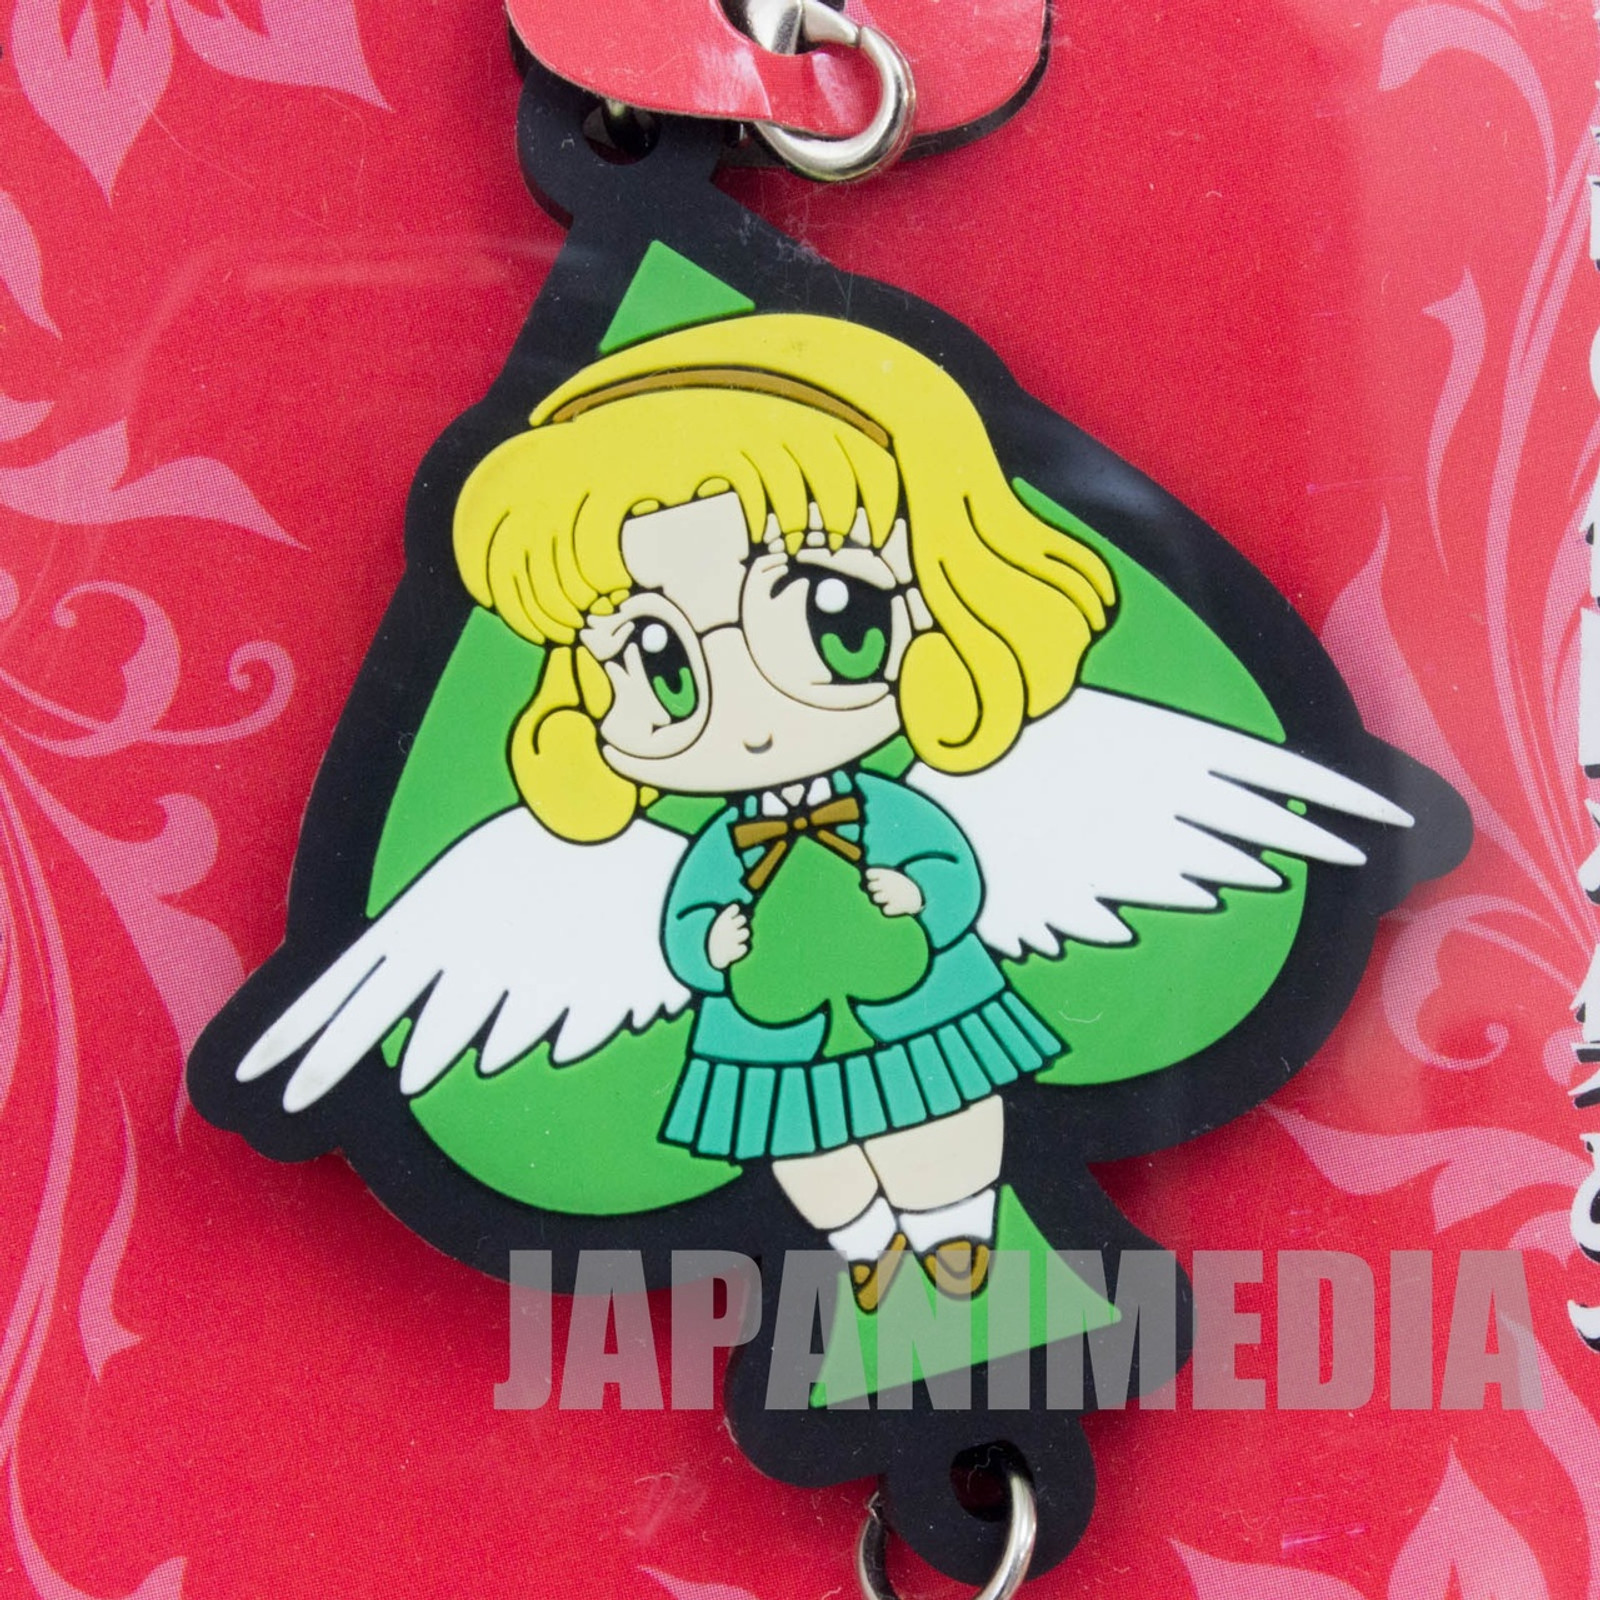 Magic Knight Rayearth Hououji Fu Mascot Rubber Strap Clamp JAPAN ANIME